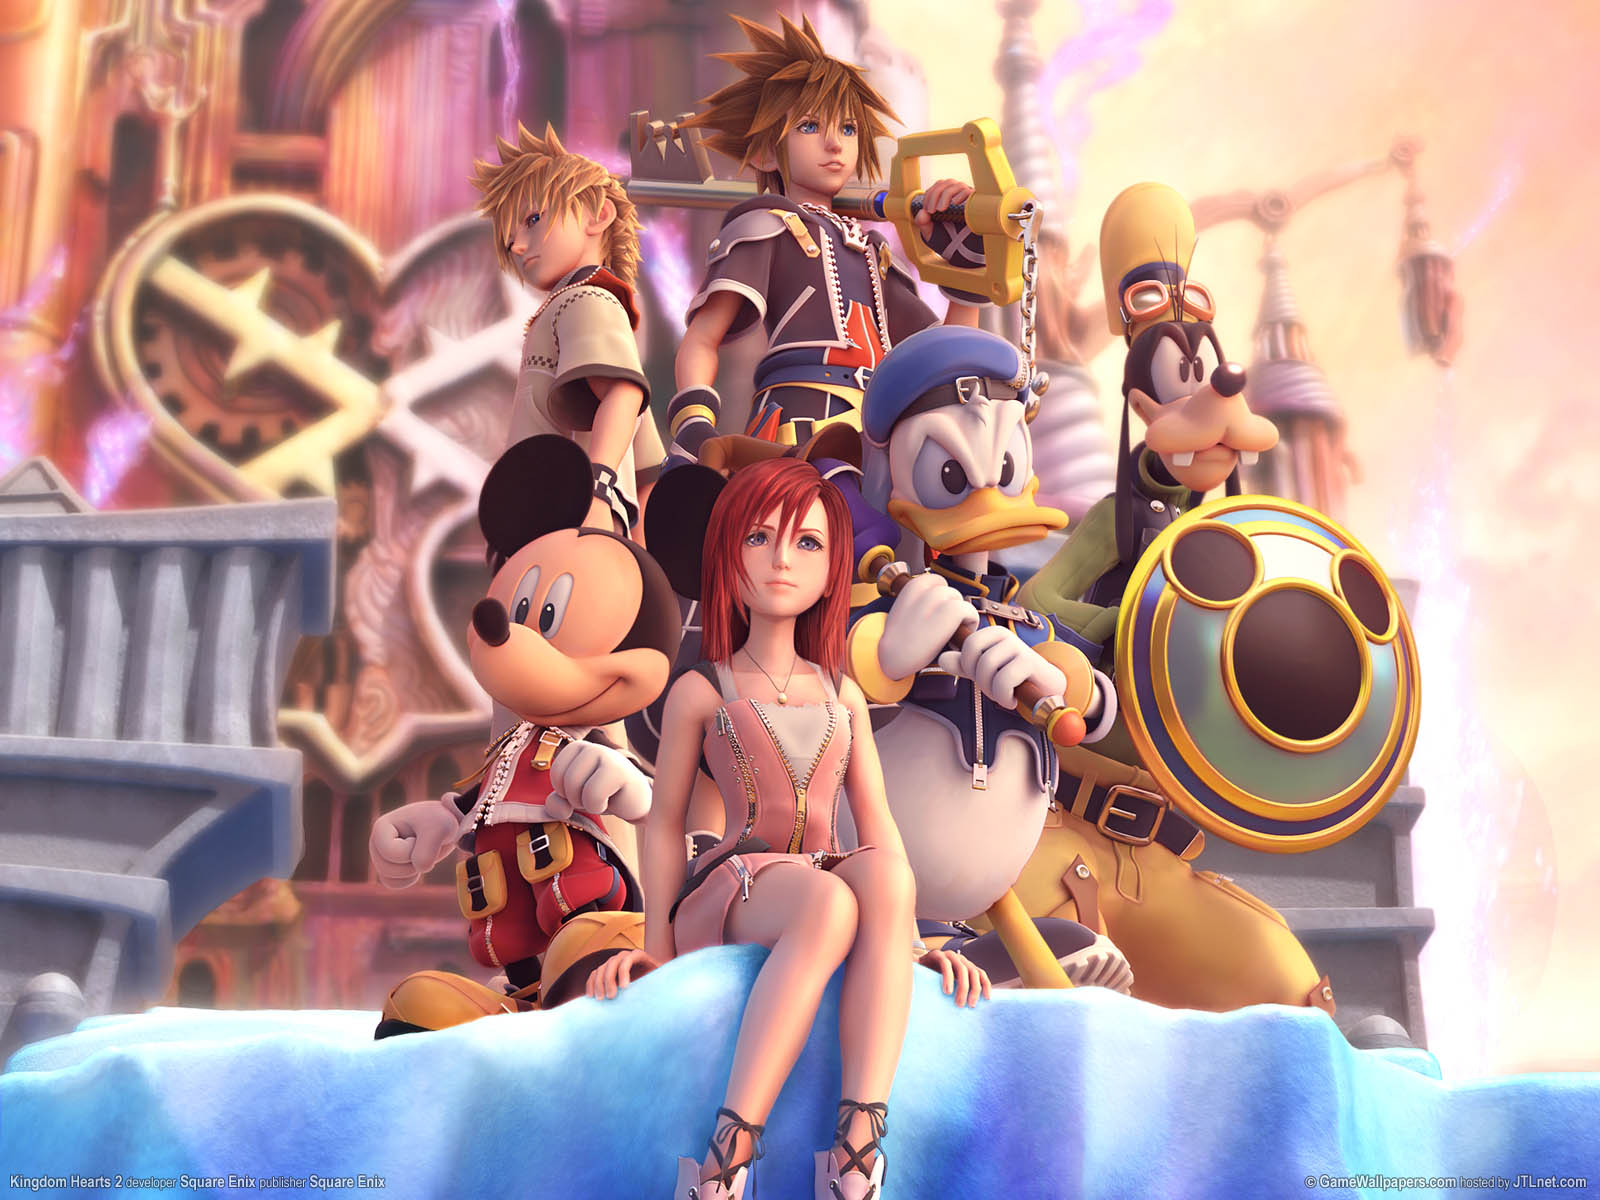 Kingdom Hearts 2 Live Playthrough – Come join me!